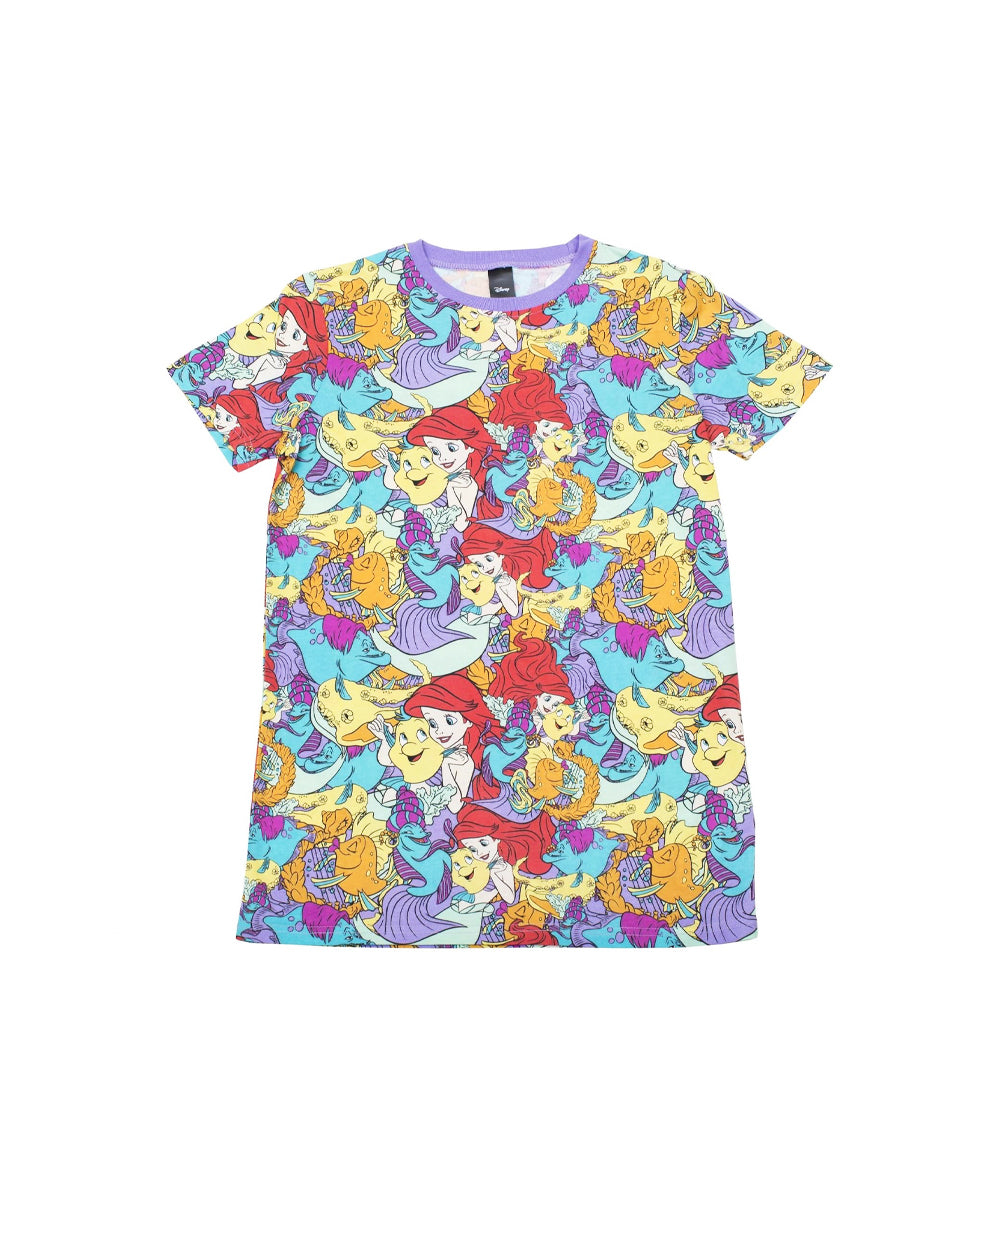 Cakeworthy - Disney Ariel AOP Unisex Tee - The Pink a la Mode - Cakeworthy - The Pink a la Mode